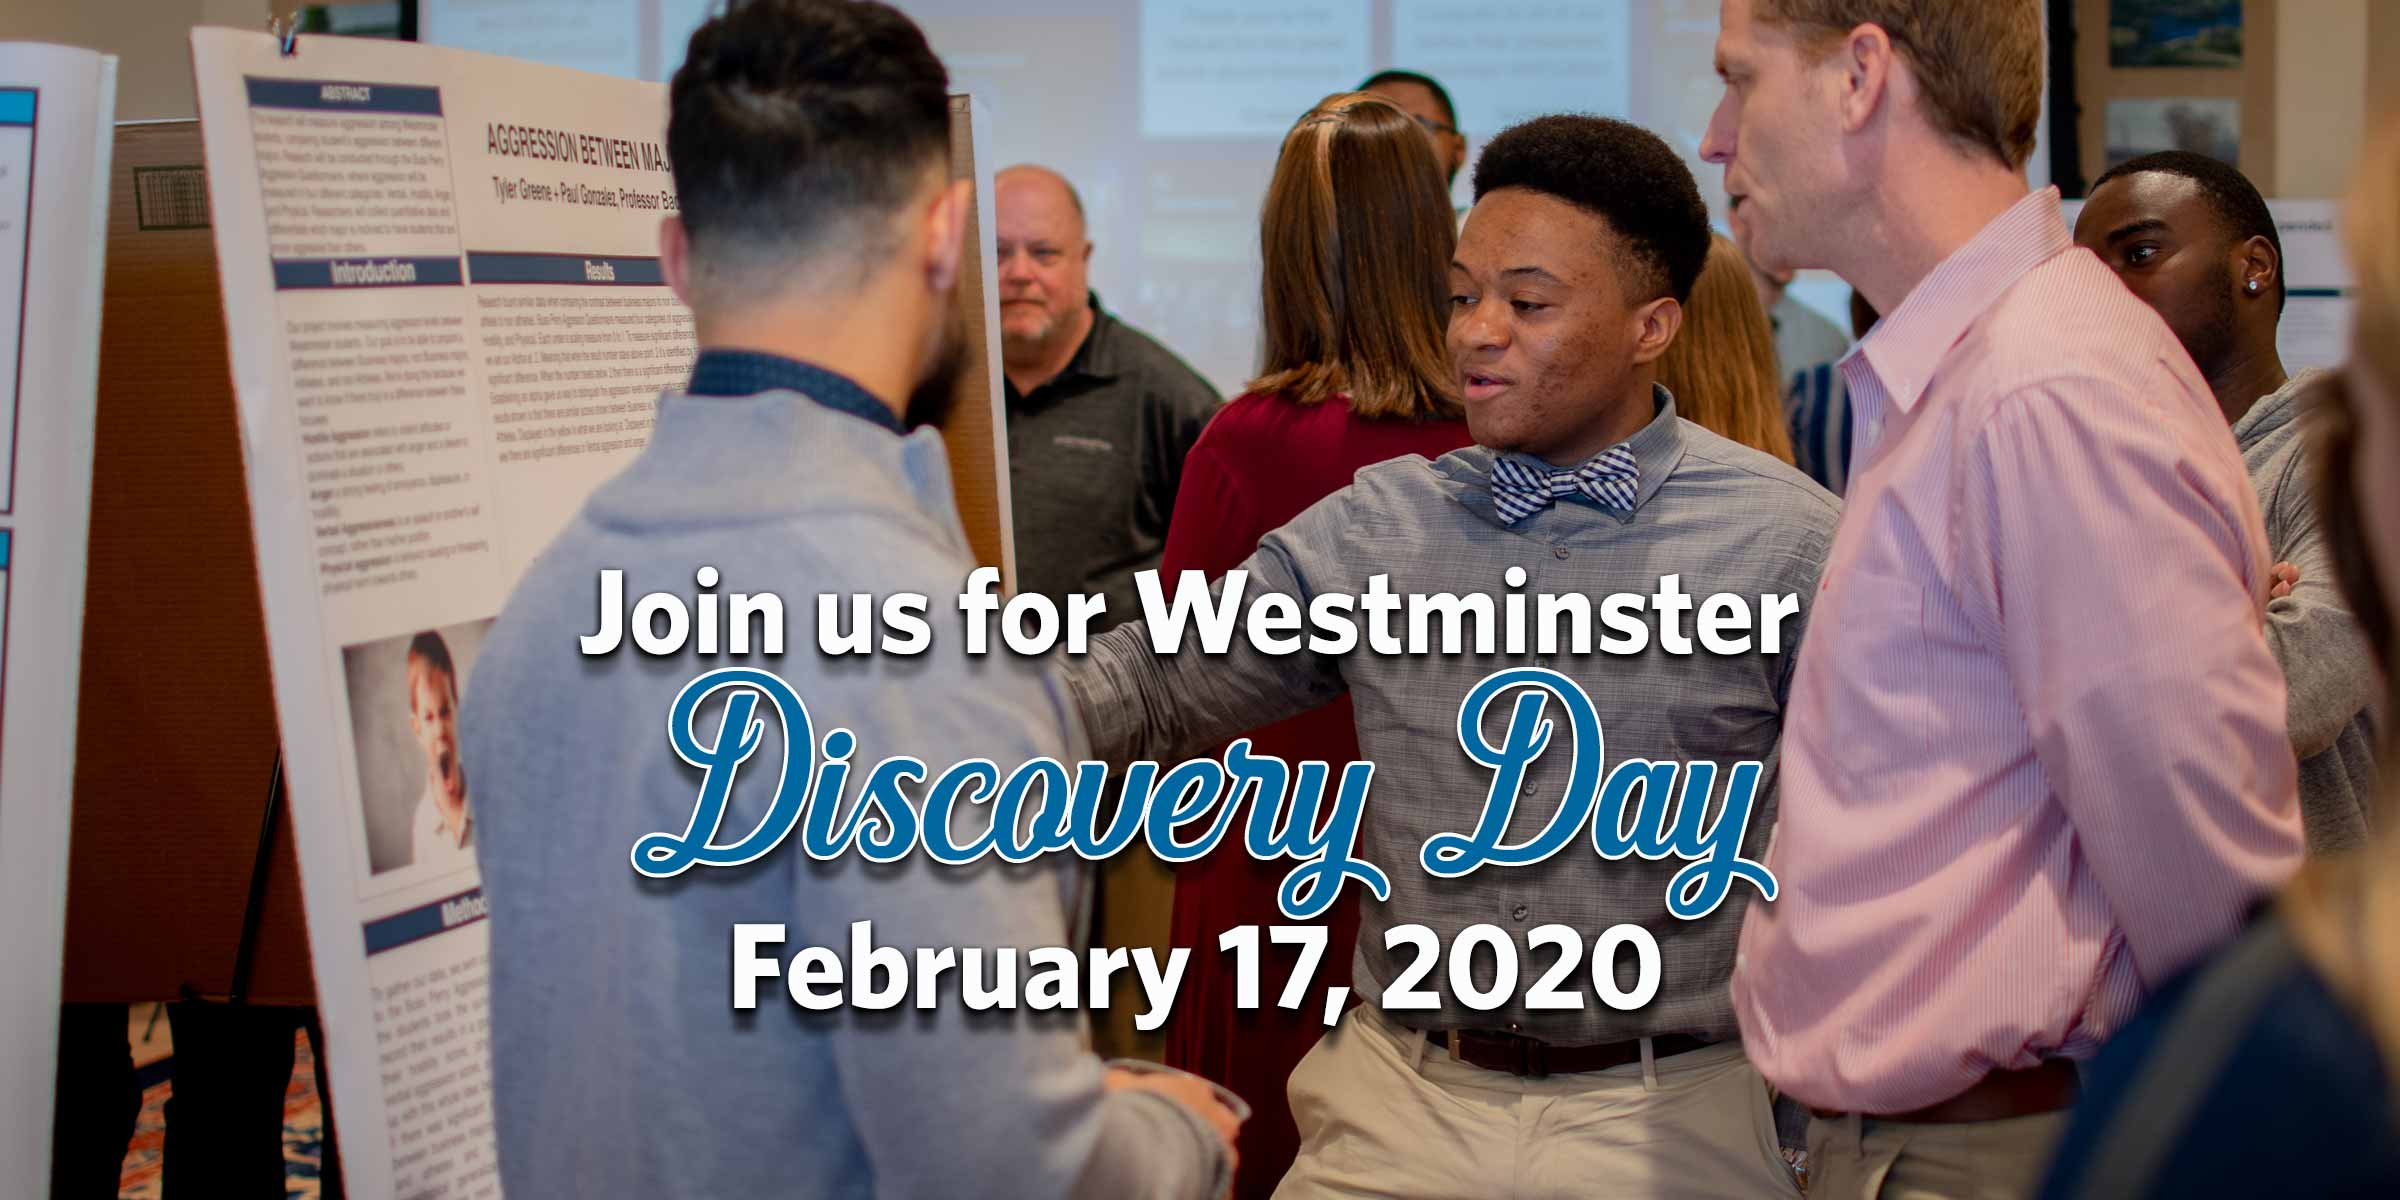 Visit us for Westminster Discovery Day February 17, 2020